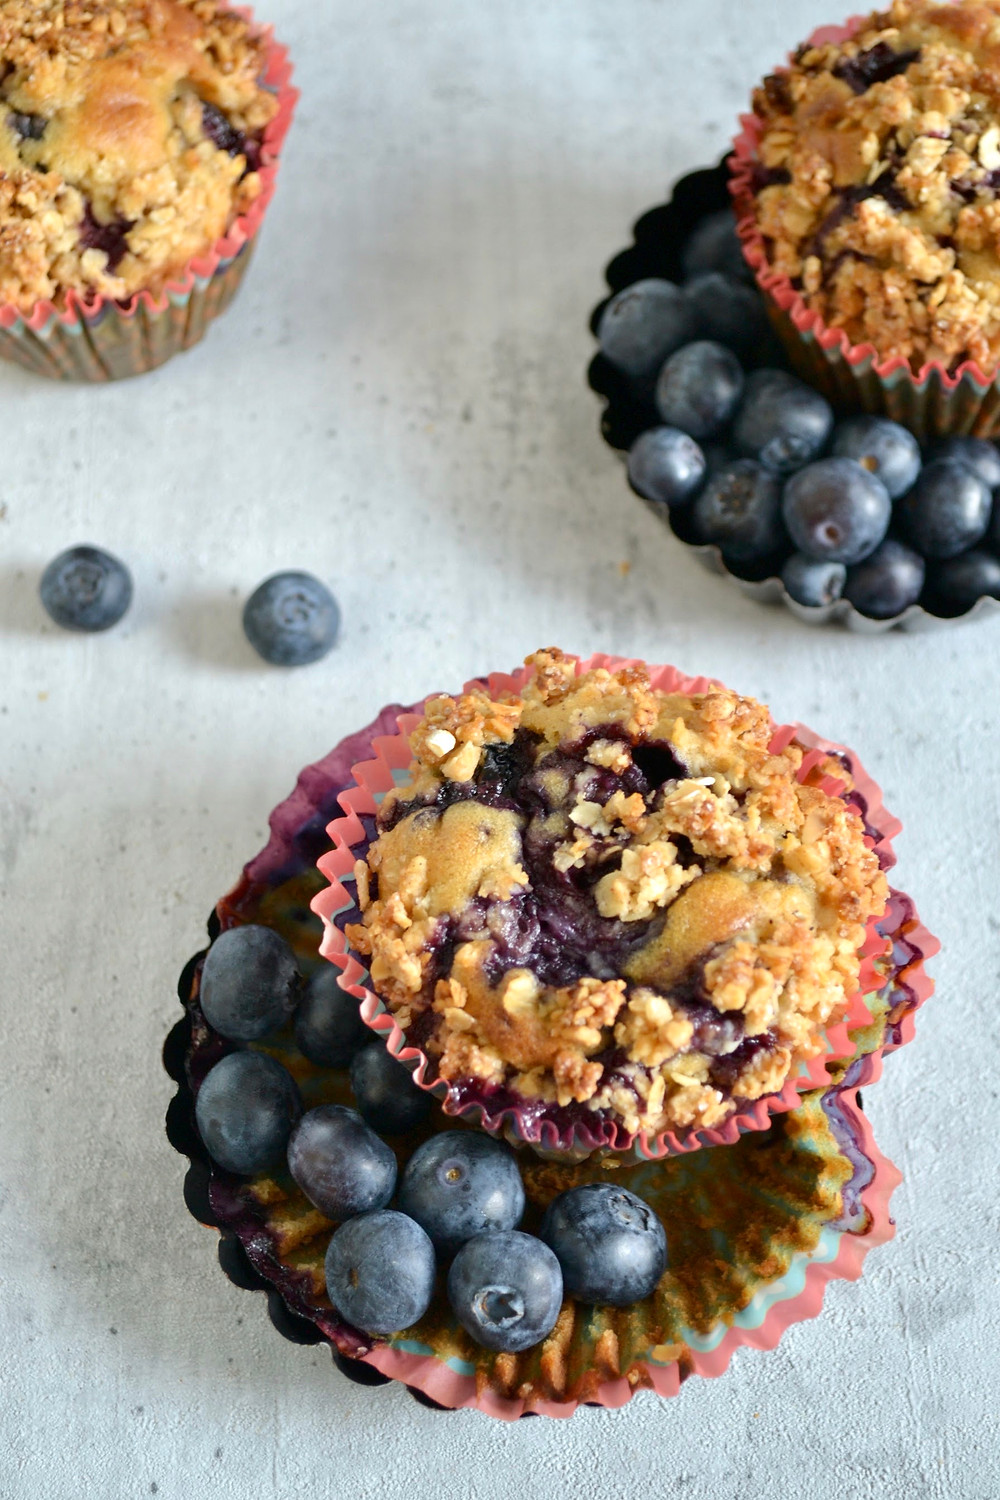 Blueberry-crumble muffins